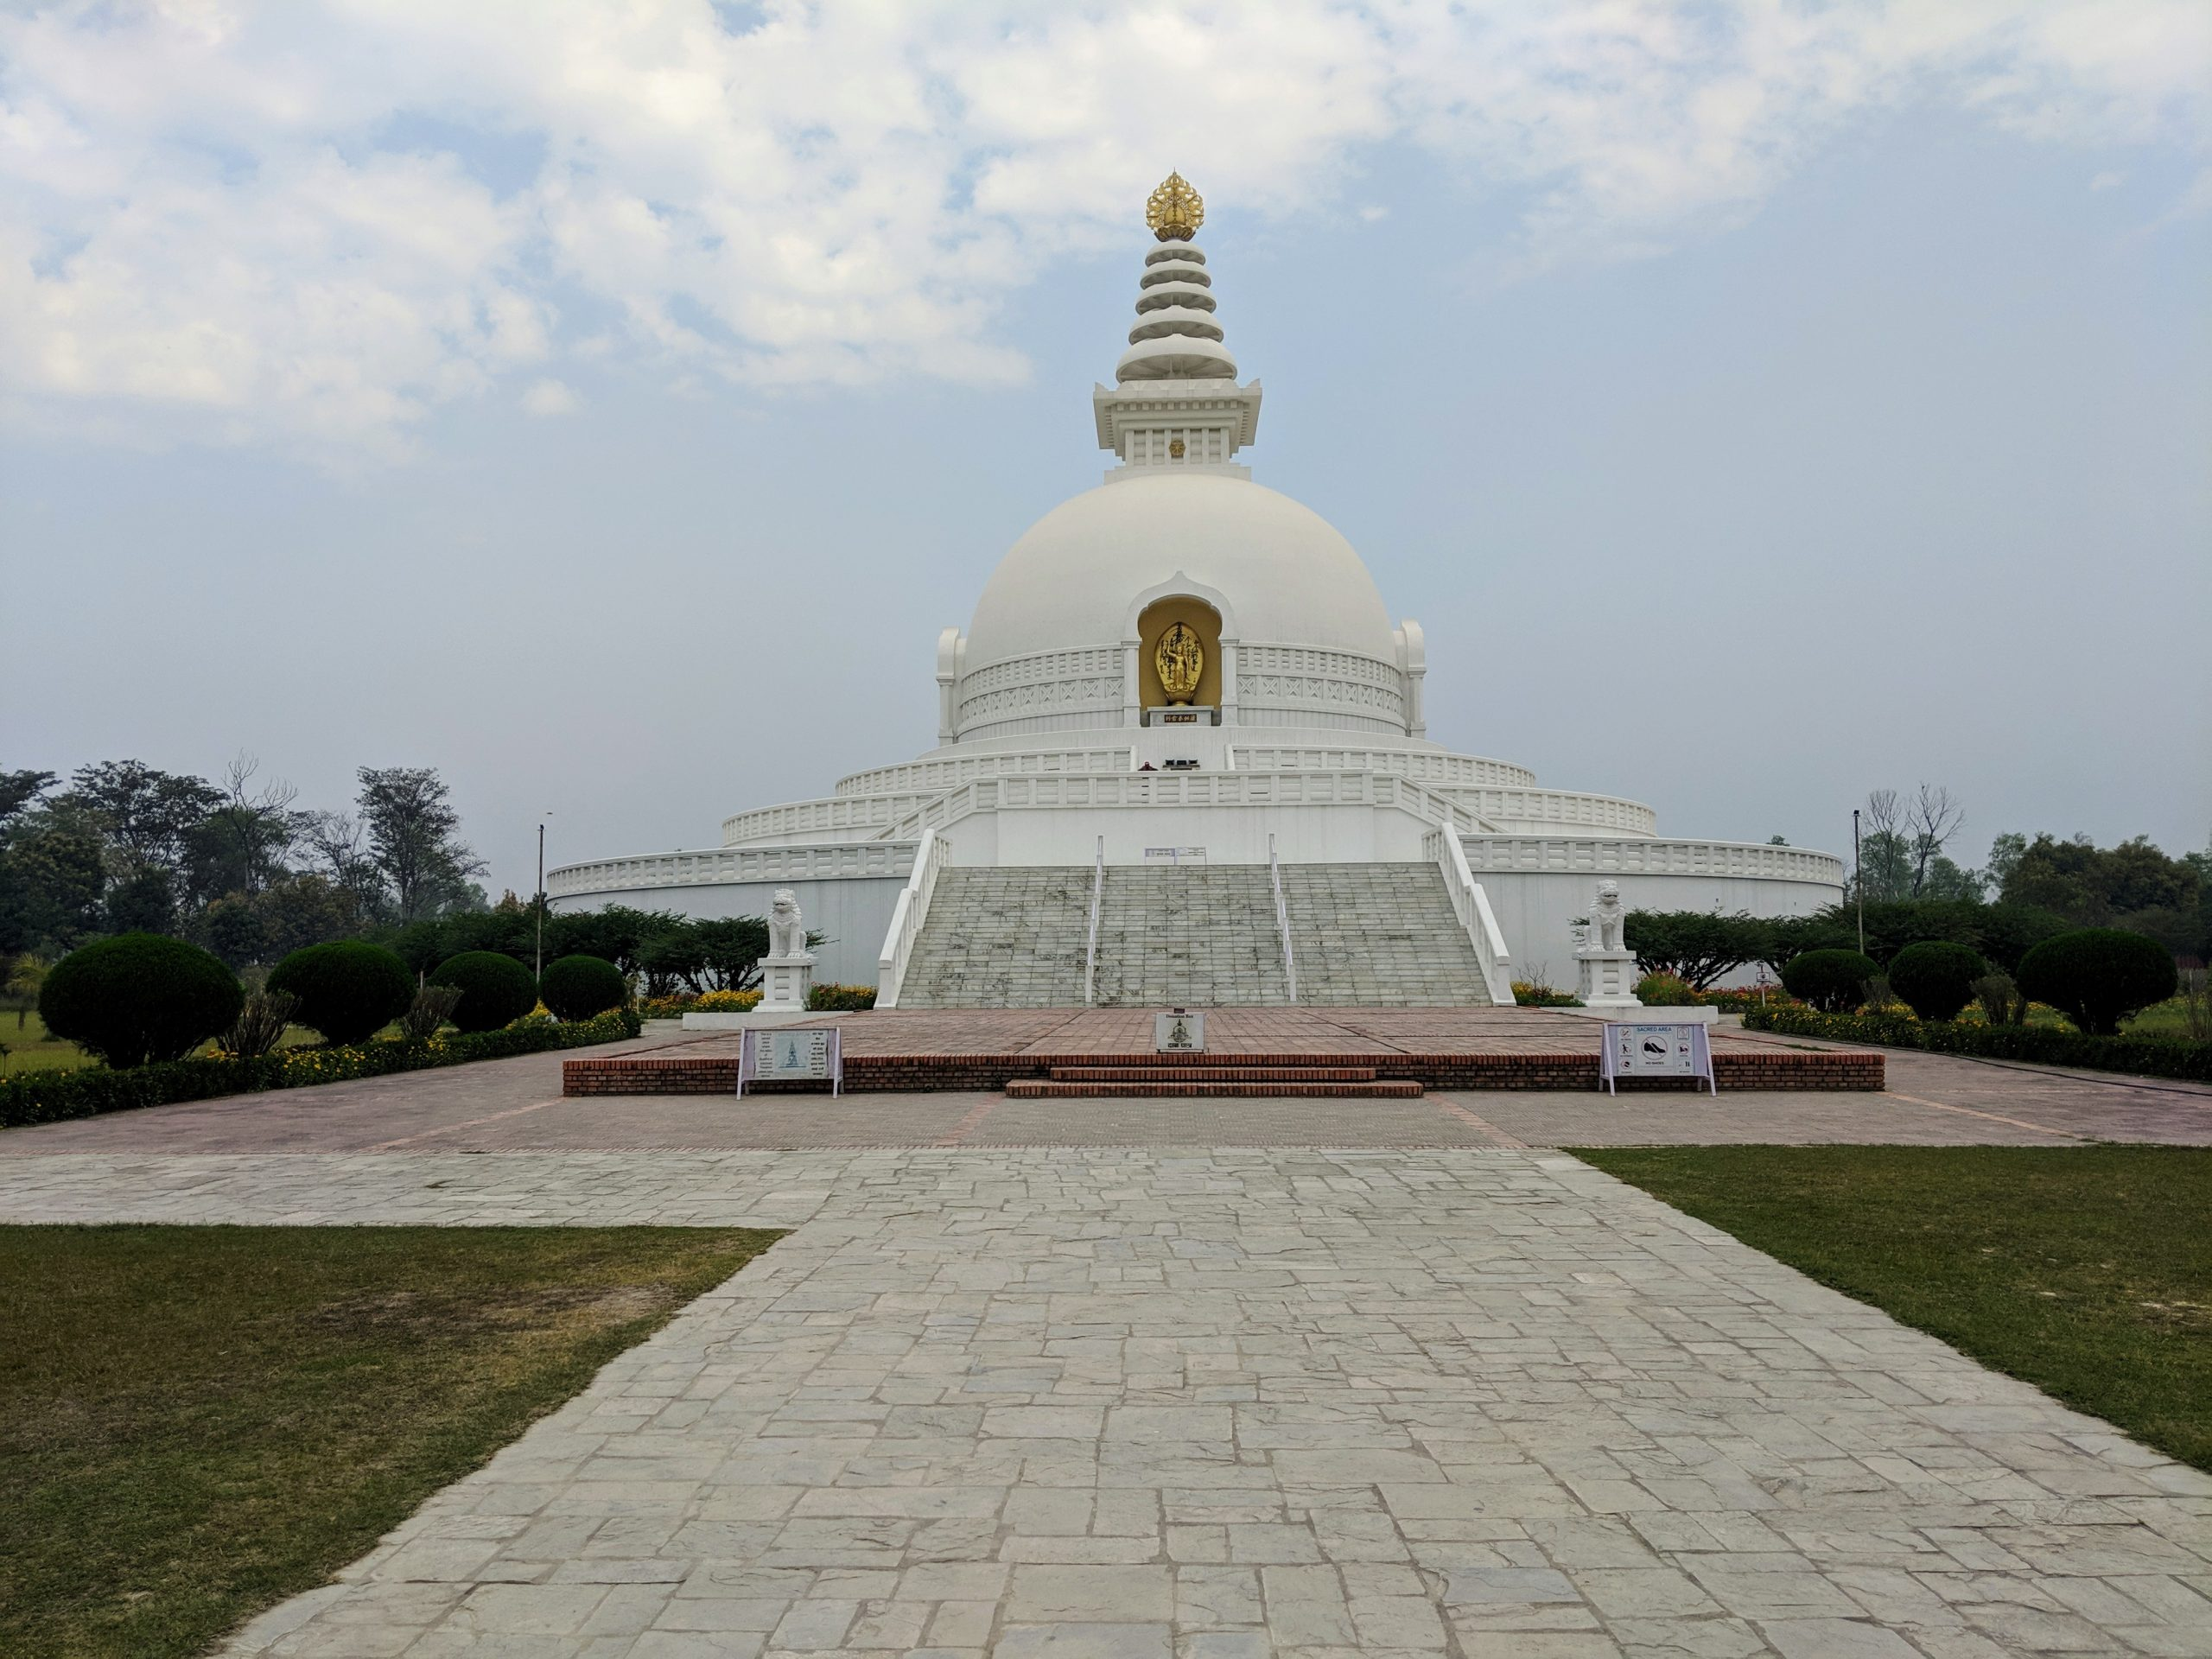 Day 10 -11: Lumbini, birthplace of Buddha